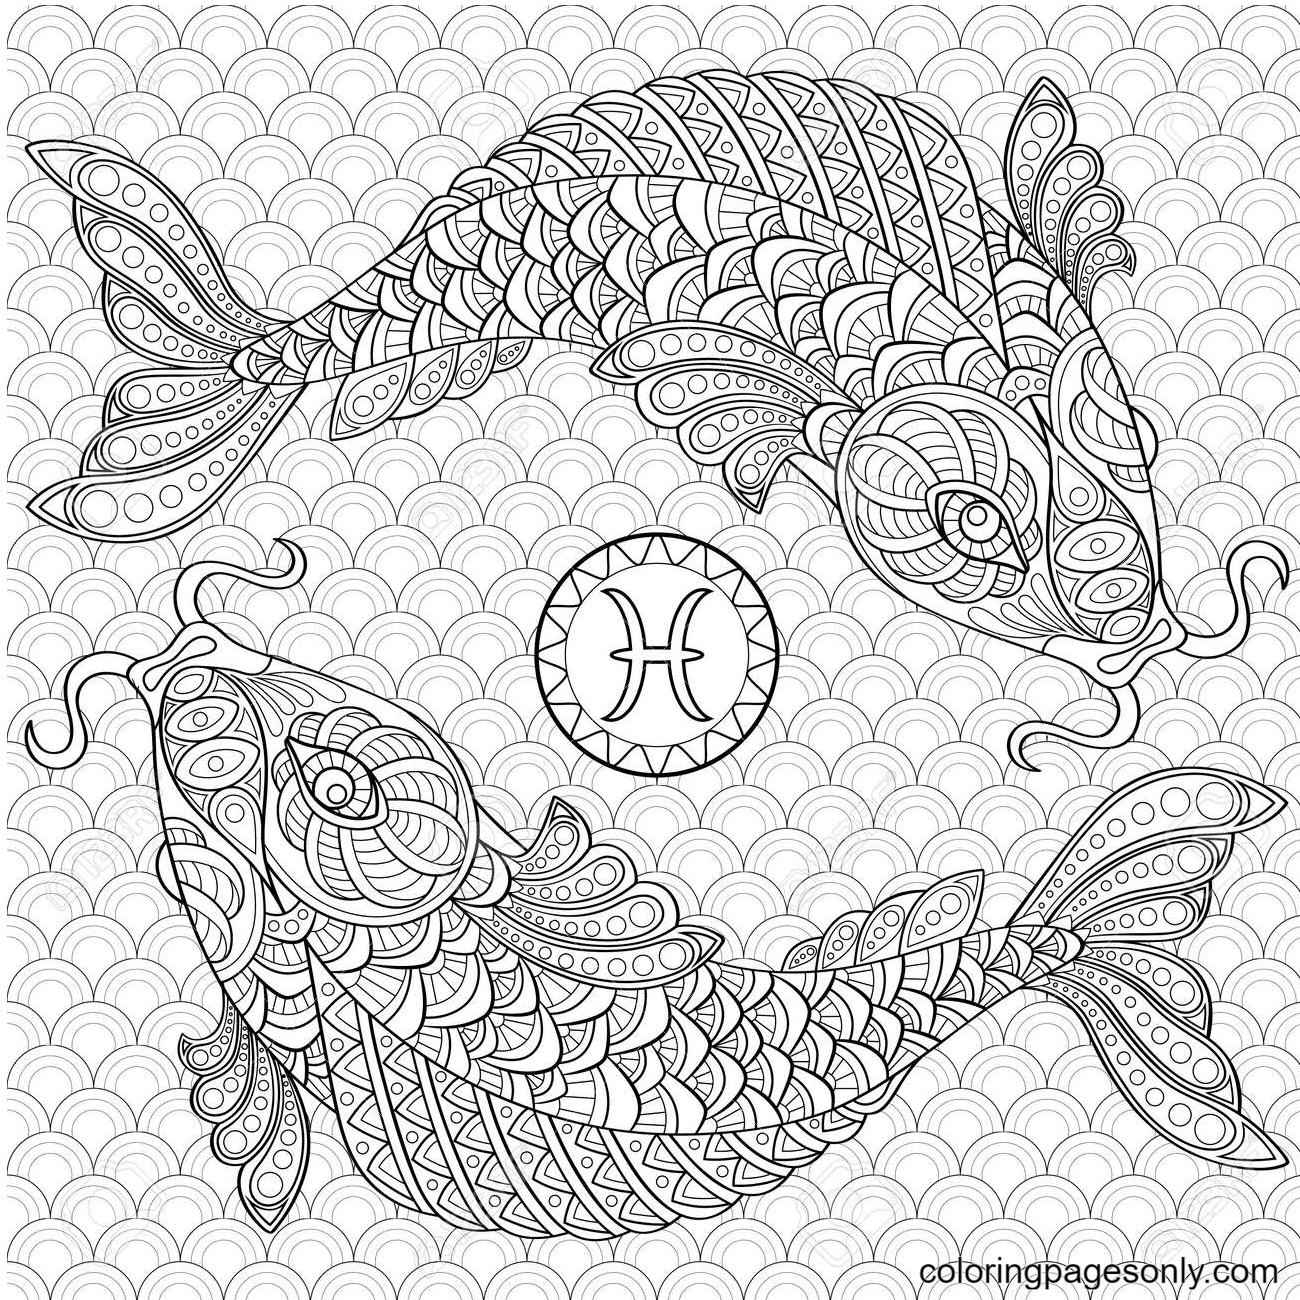 Pisces – Koi fish Coloring Page